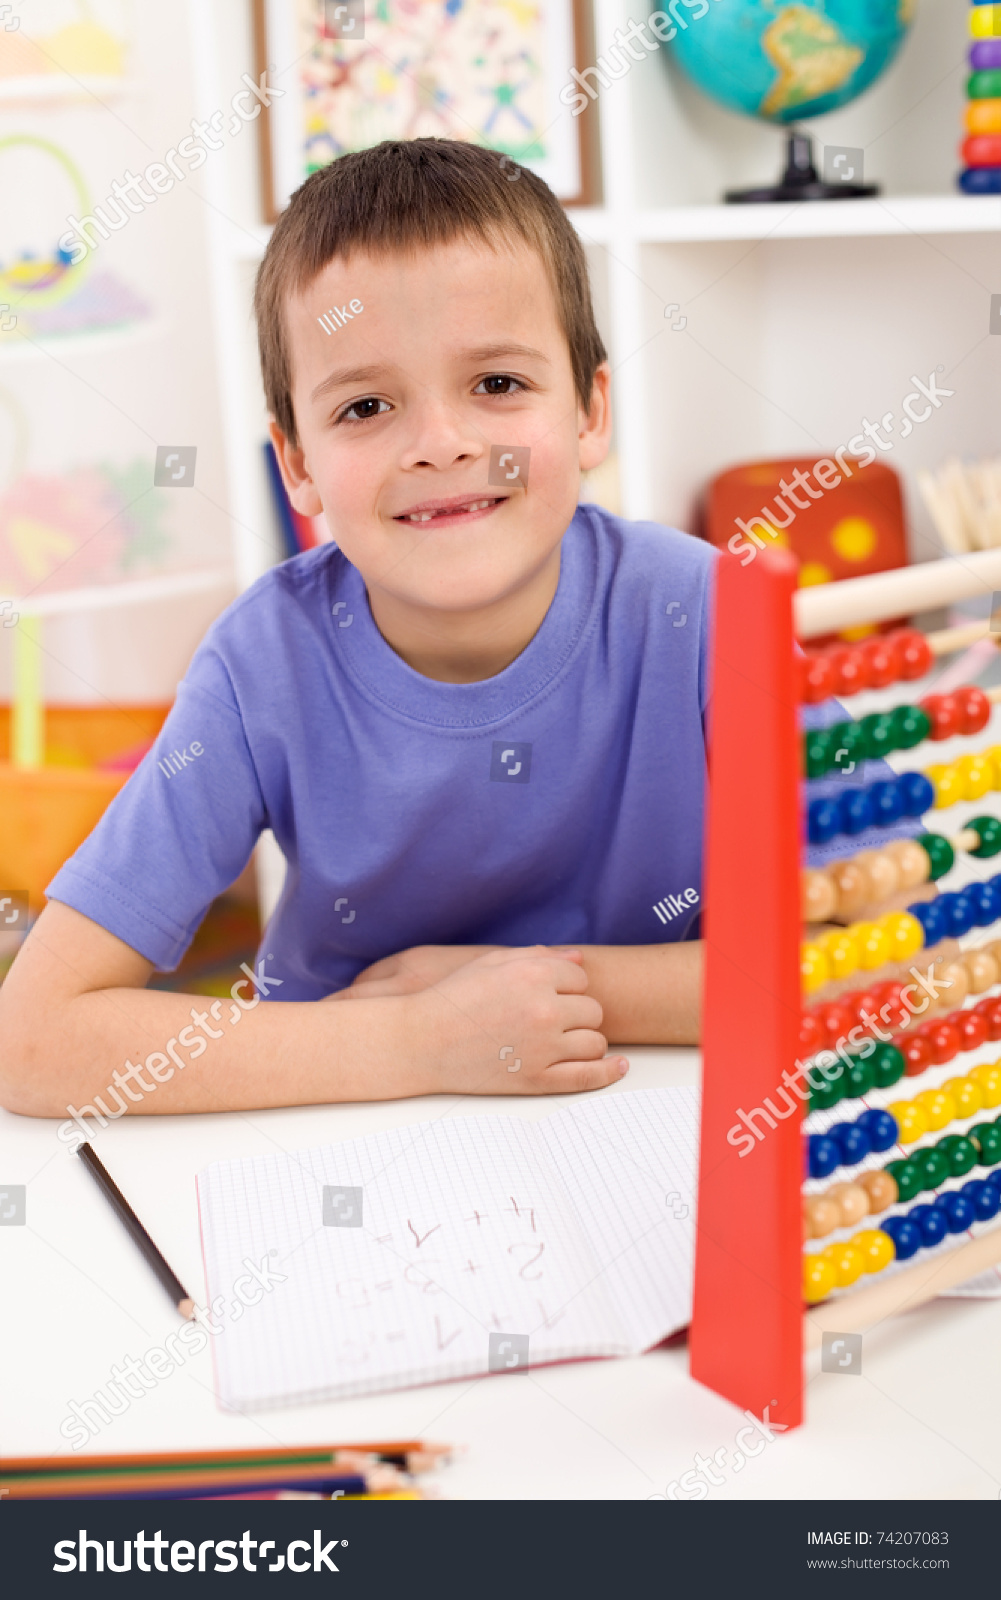 Happy Boy Solving Math Exercises In His Room Stock Photo